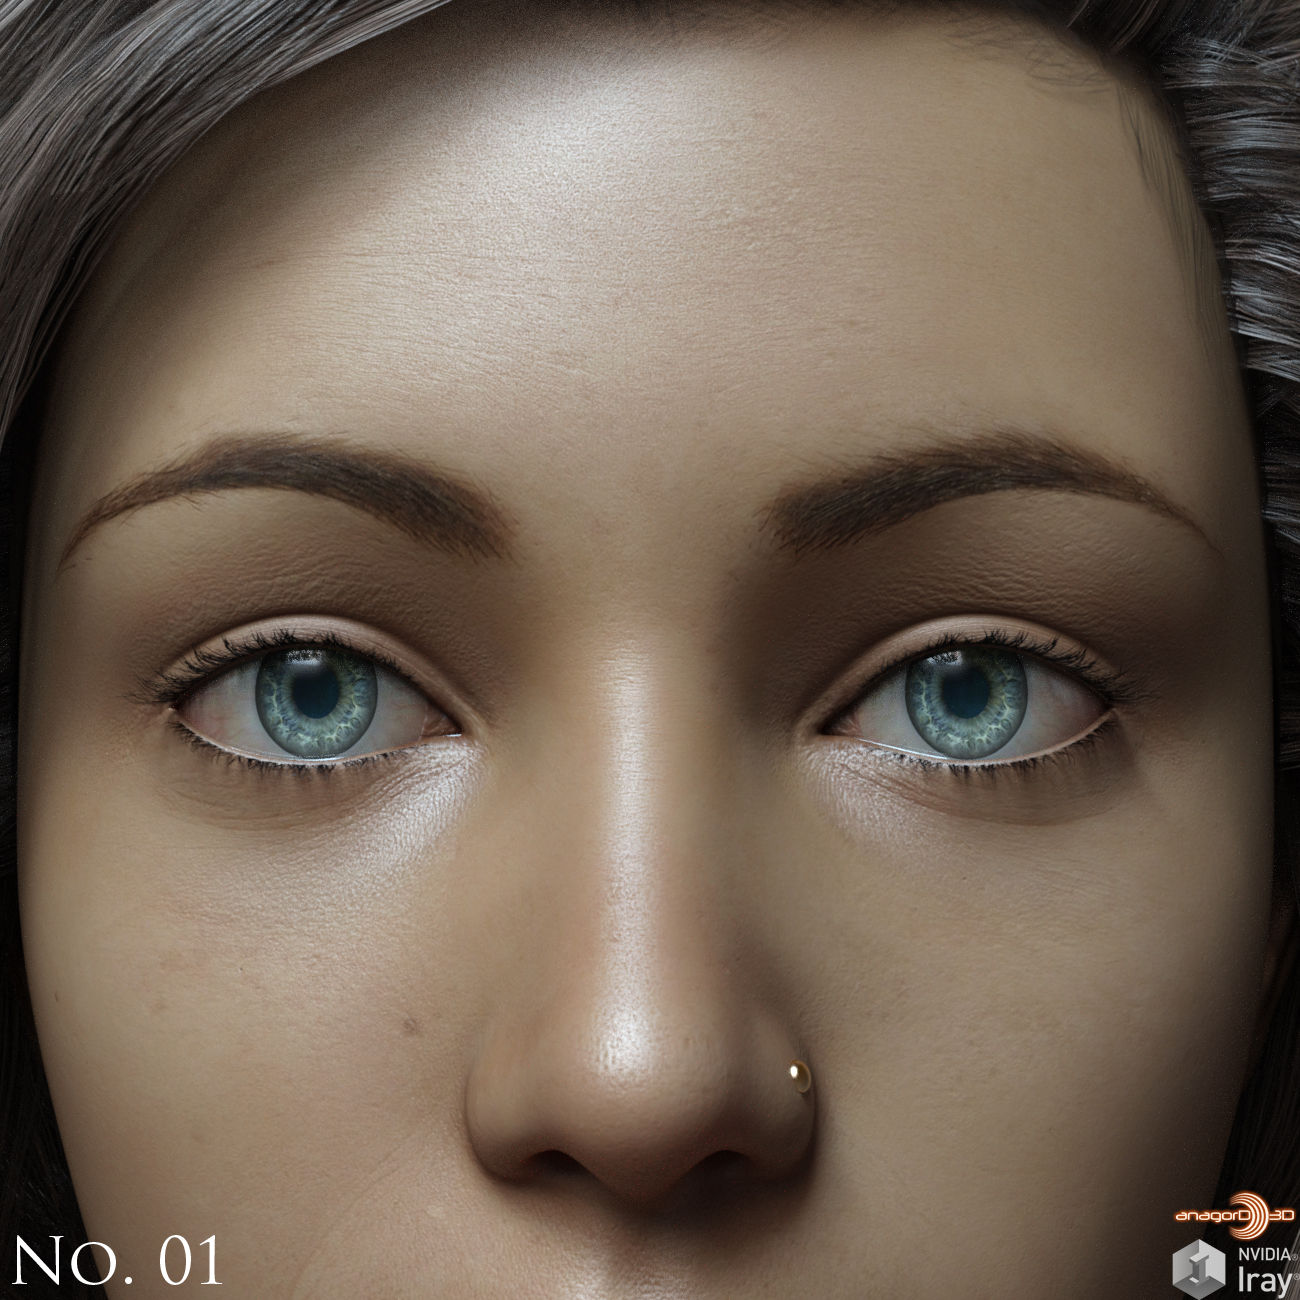 Eyes,Eyebrows&Lashes Morphs for G8F Vol 1